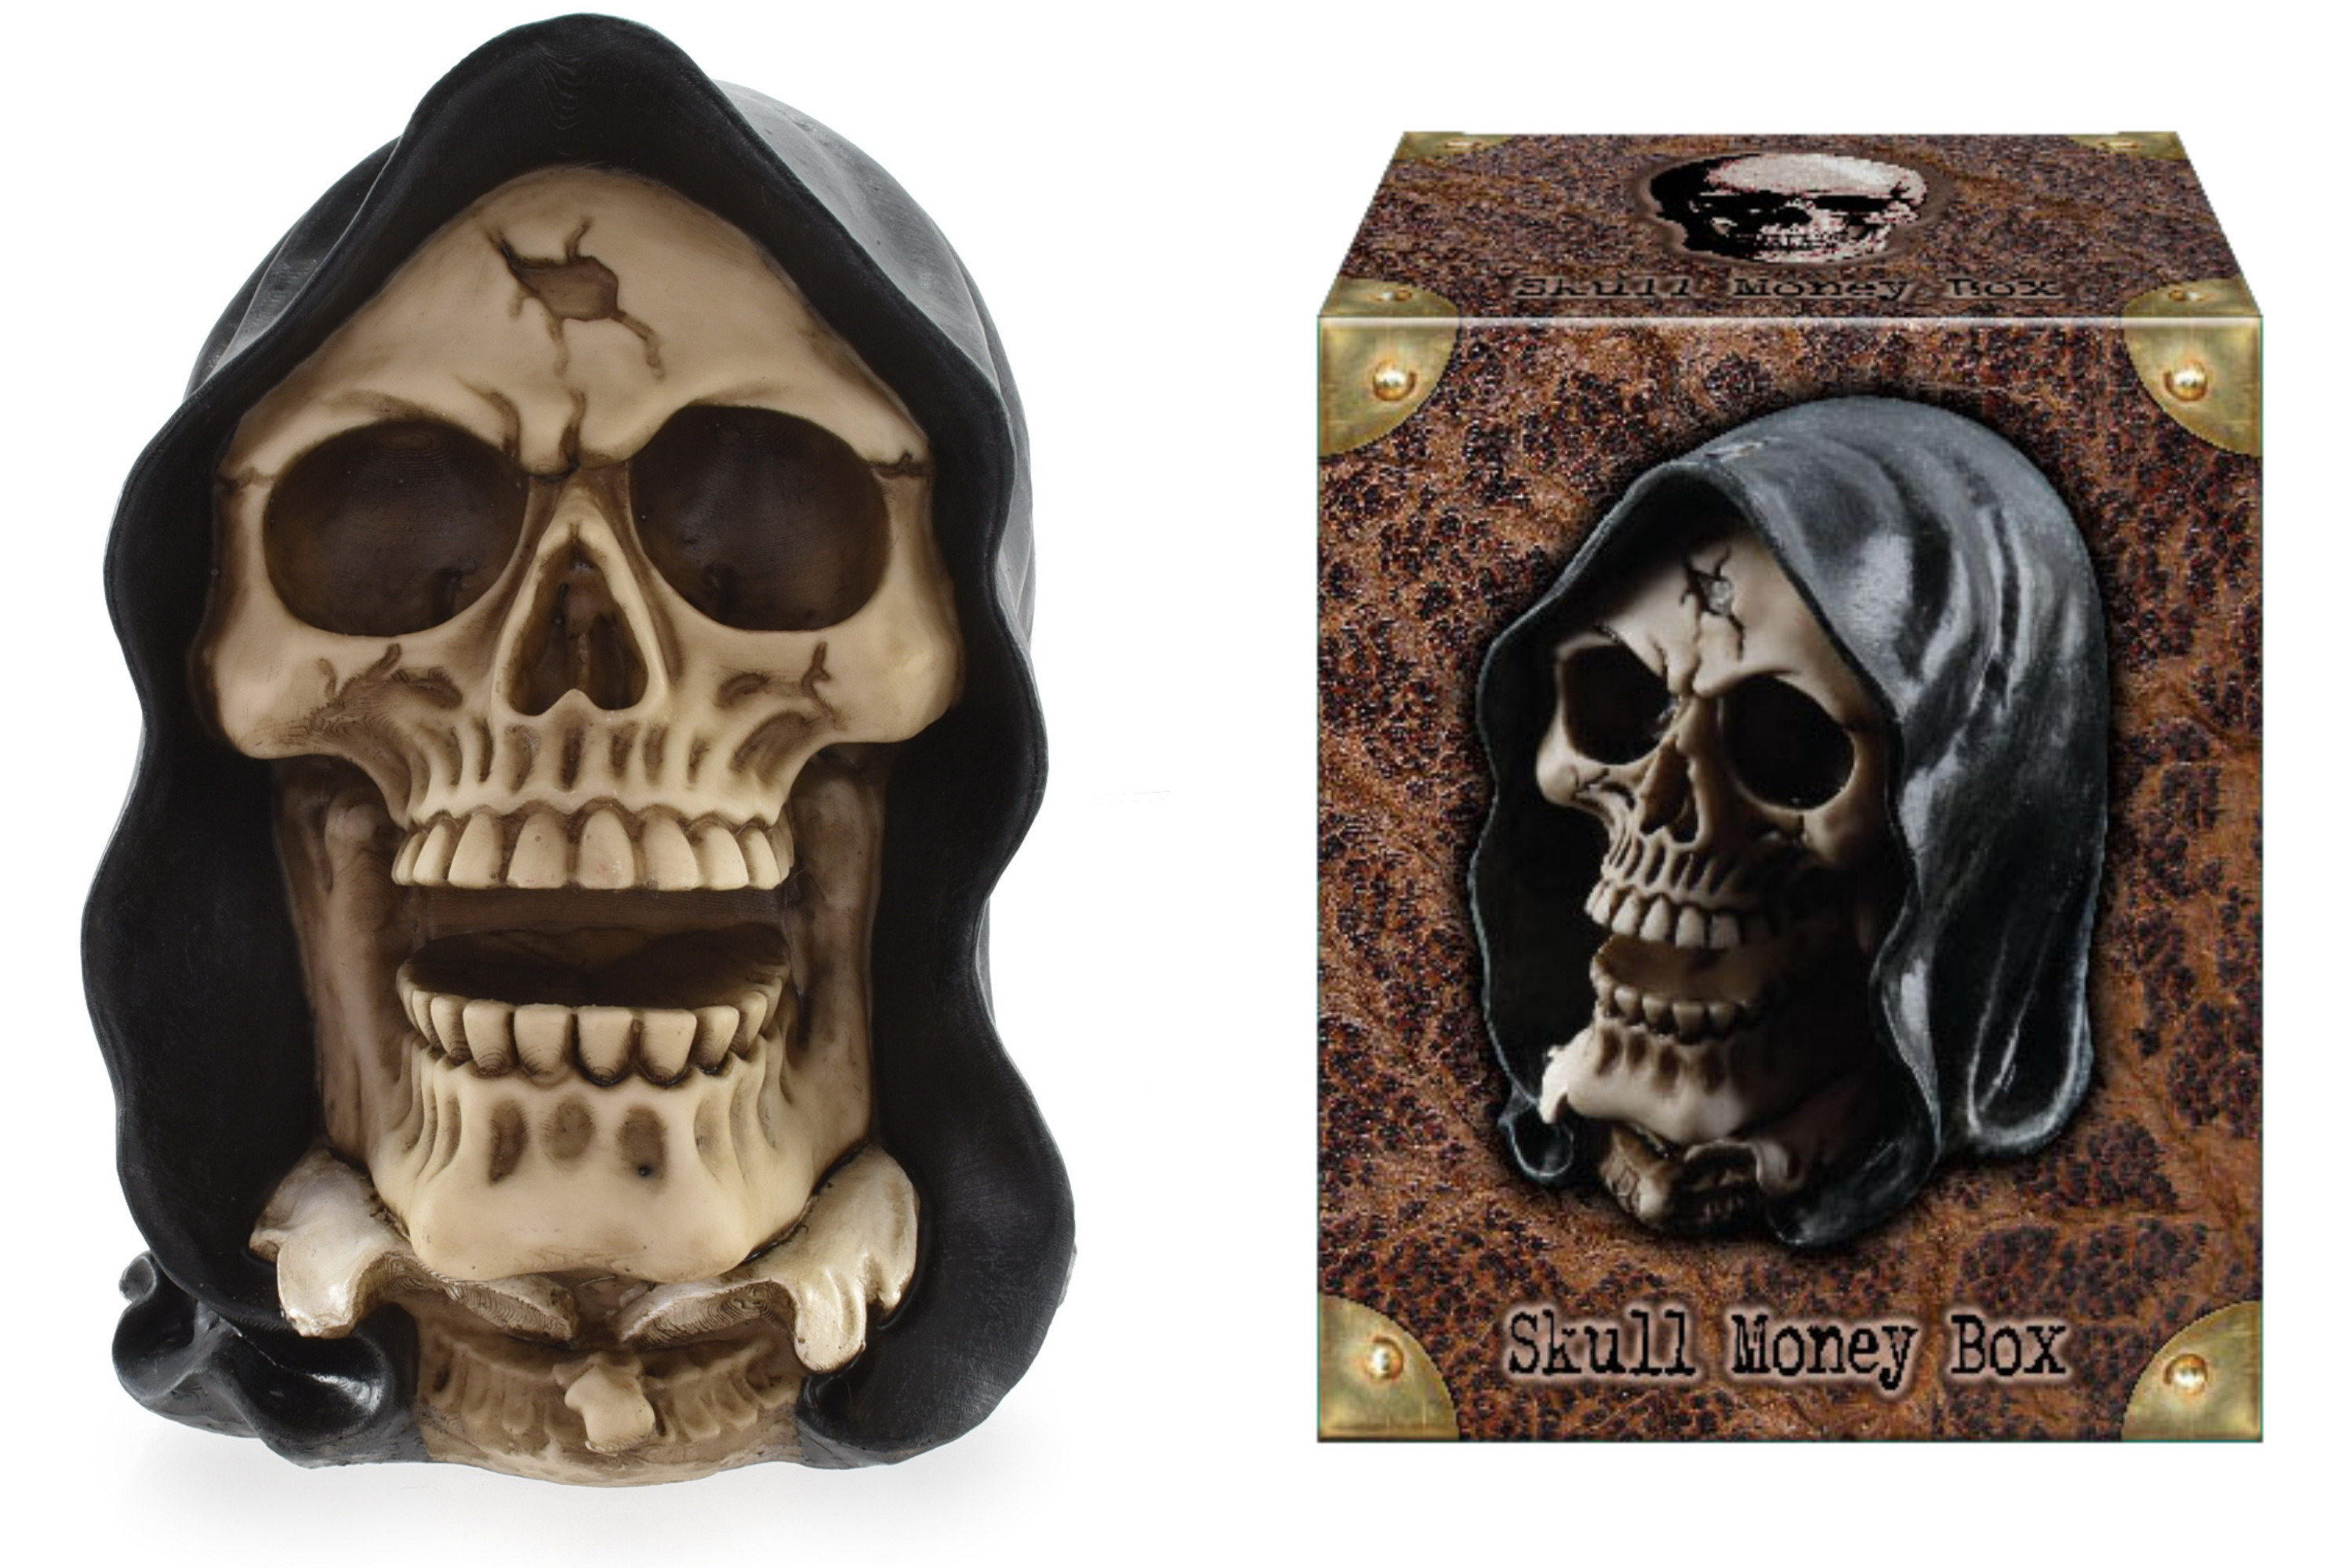 Death Skull Money Box